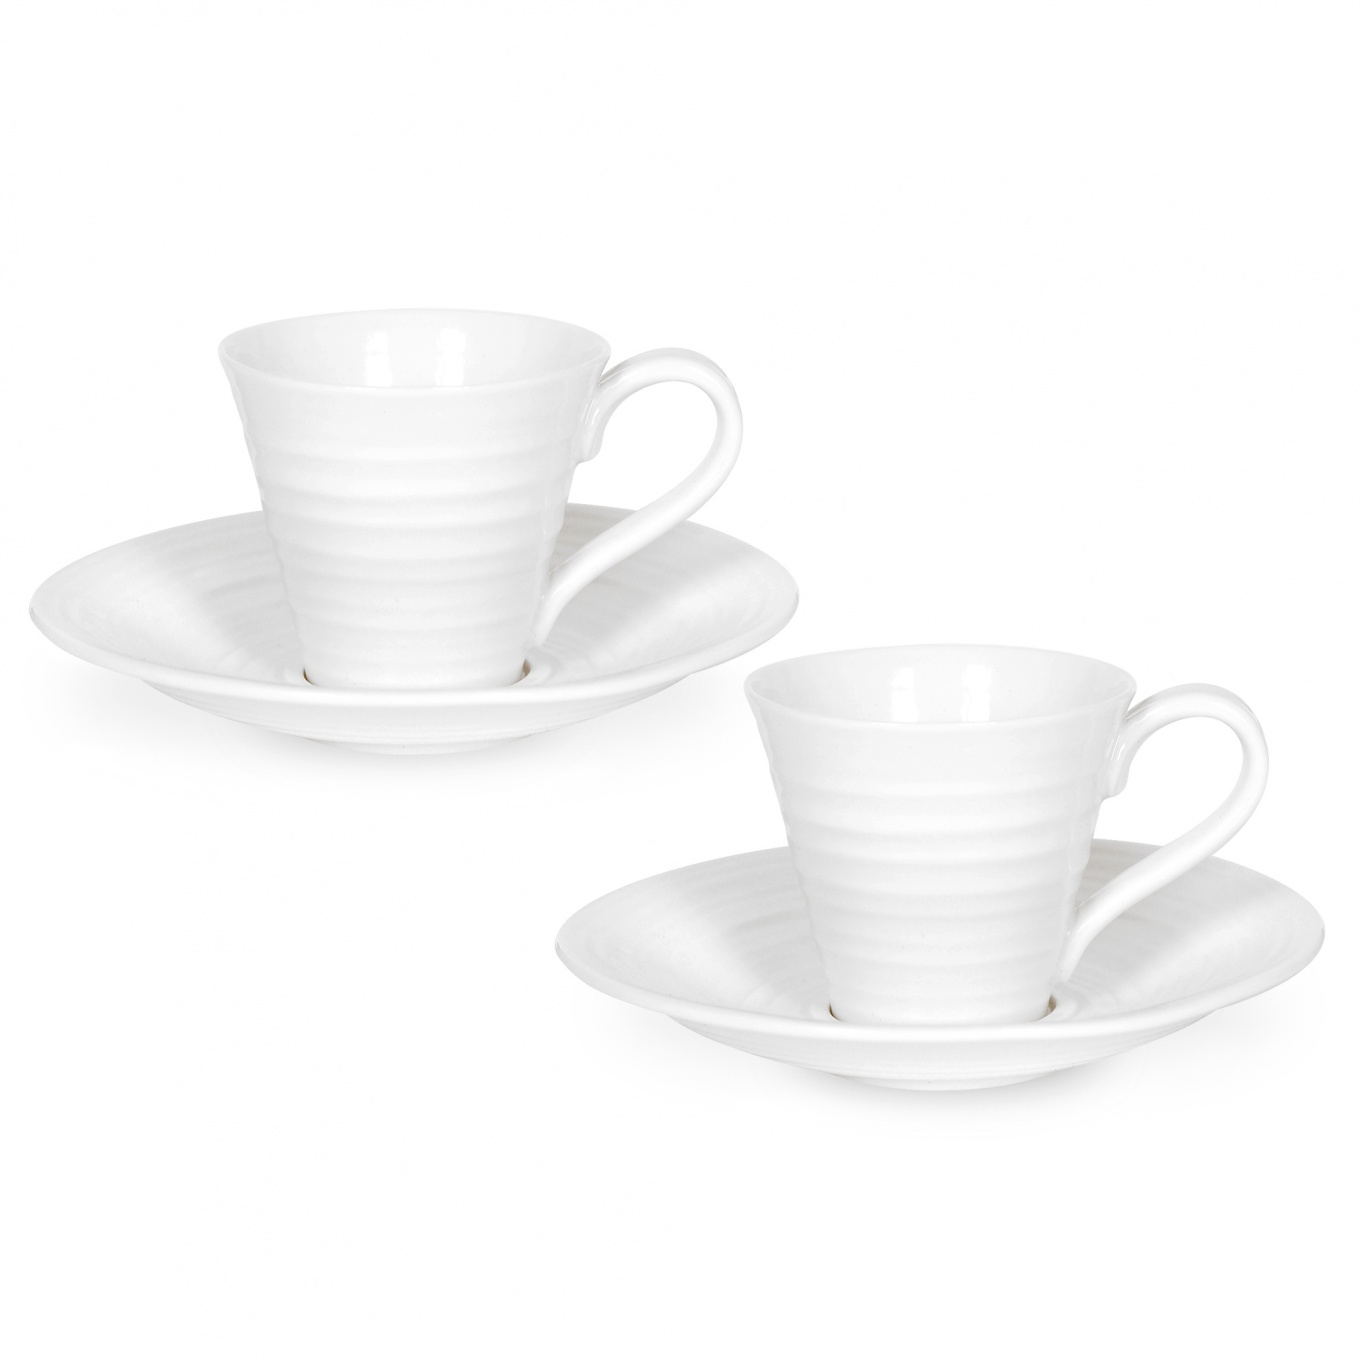 Image of Sophie Conran White Espresso Cup and Saucer 0.08L Set of 2